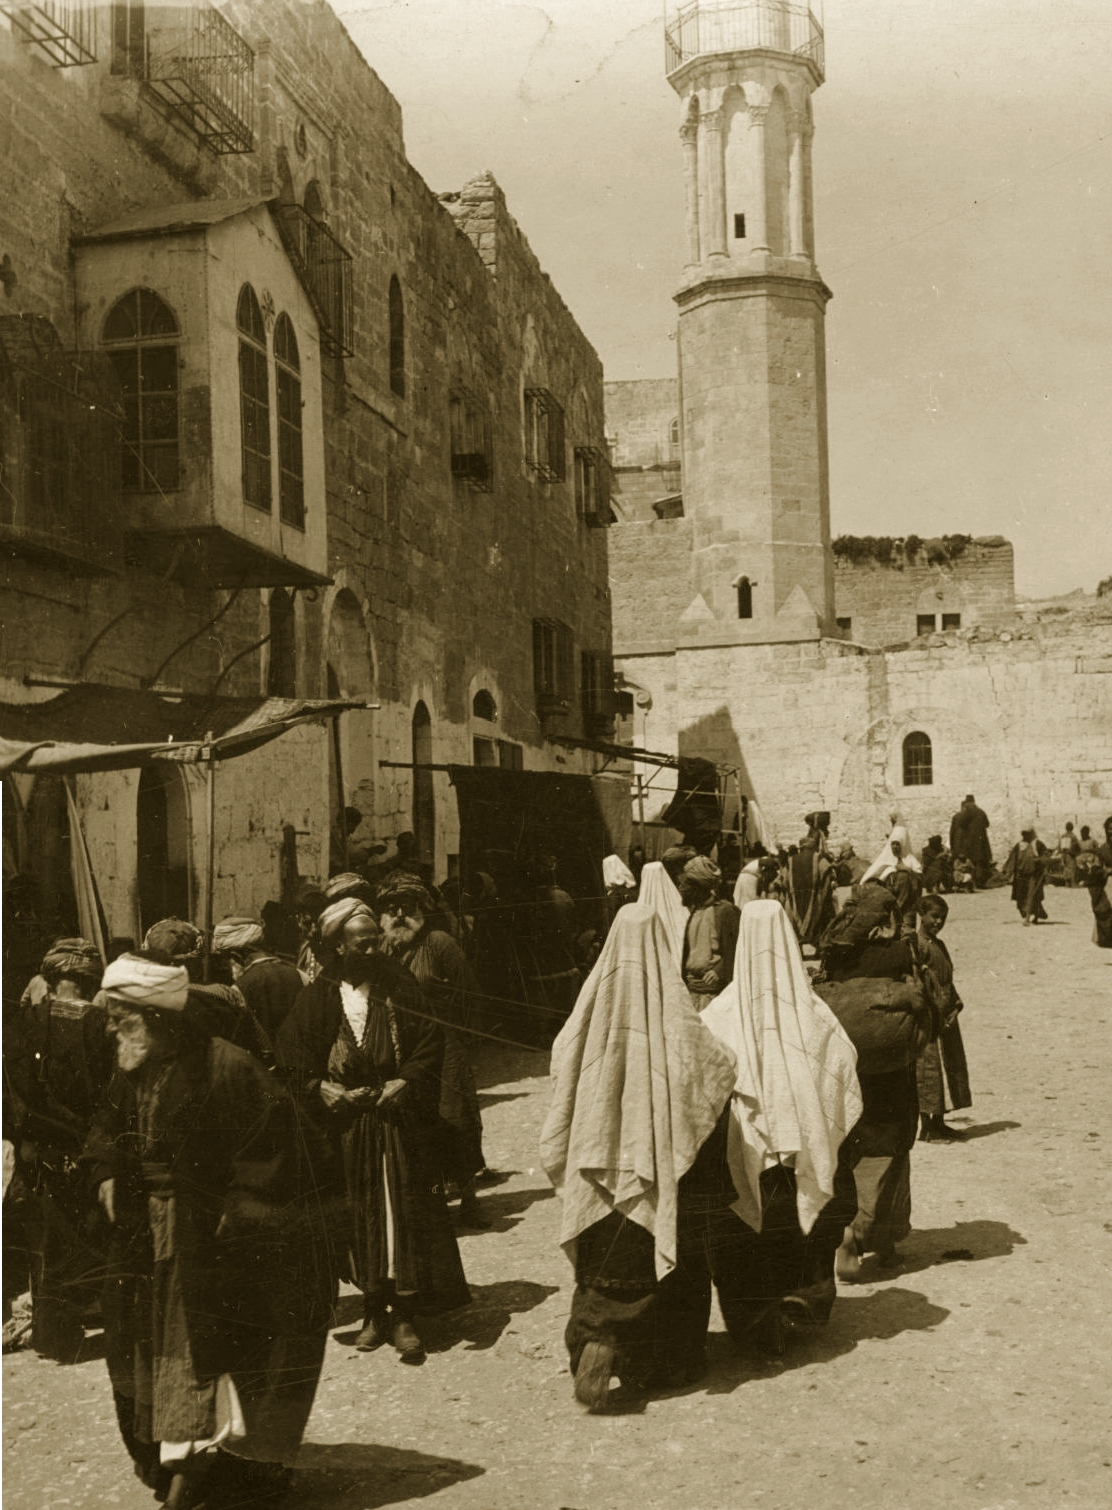 Bethlehem - بيت لحم : Women of Bethlehem 159 (late 19th, early 20th c.) - Going to the market (Per Reem Ackall)